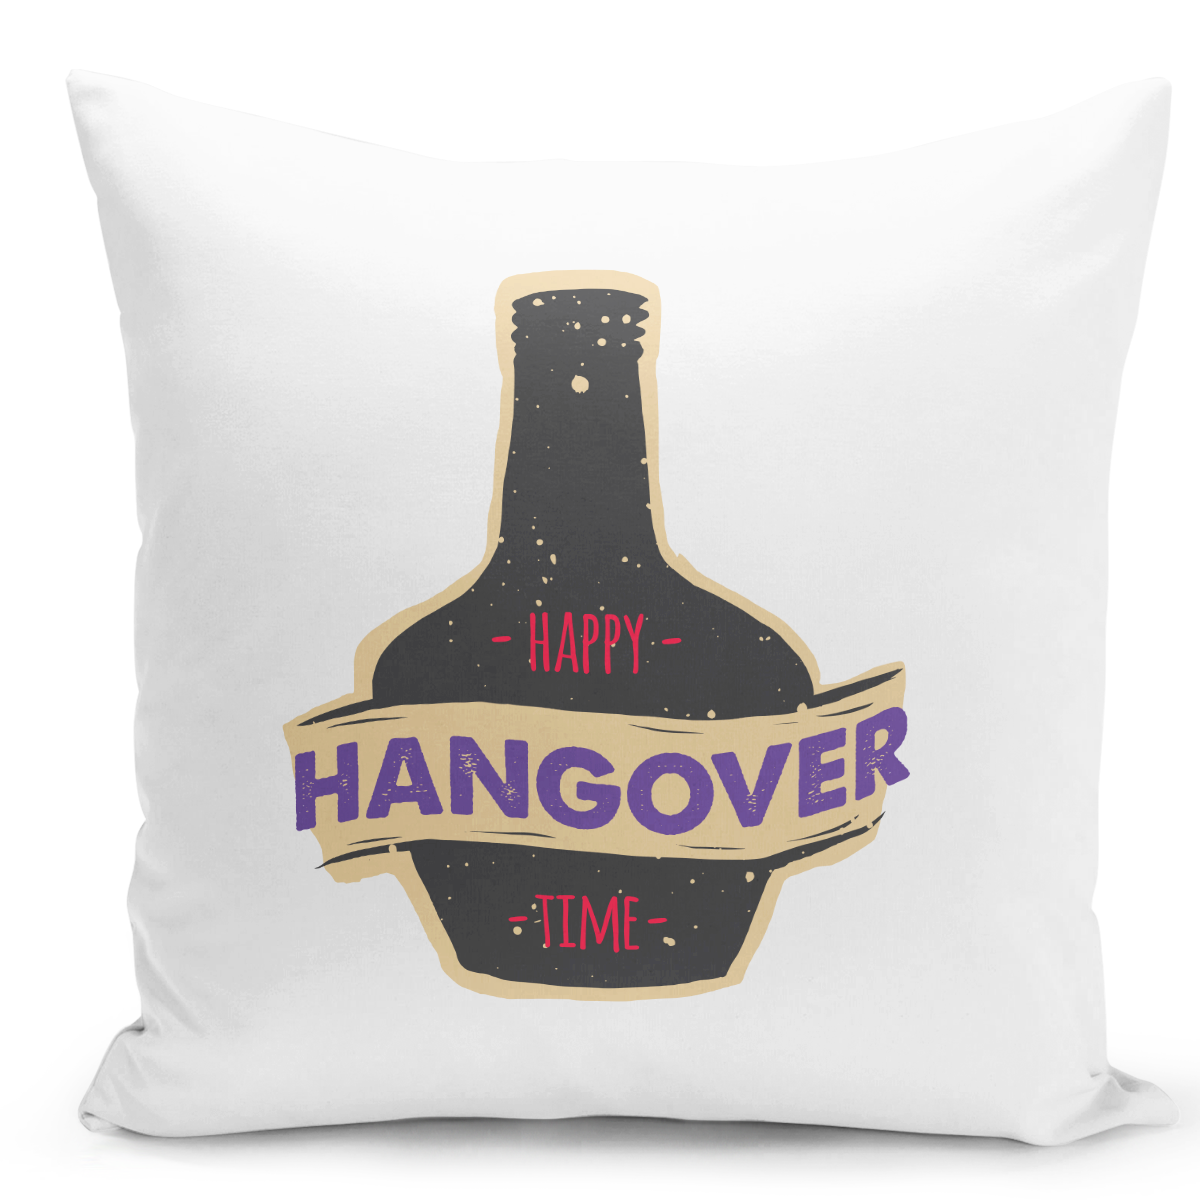 White-Throw-Pillow-Happy-Hangover-Time-Happy-Hour-Bottle---Pure-White-Printed-16-x-16-inch-Square-Home-Decor-Couch-Pillow-